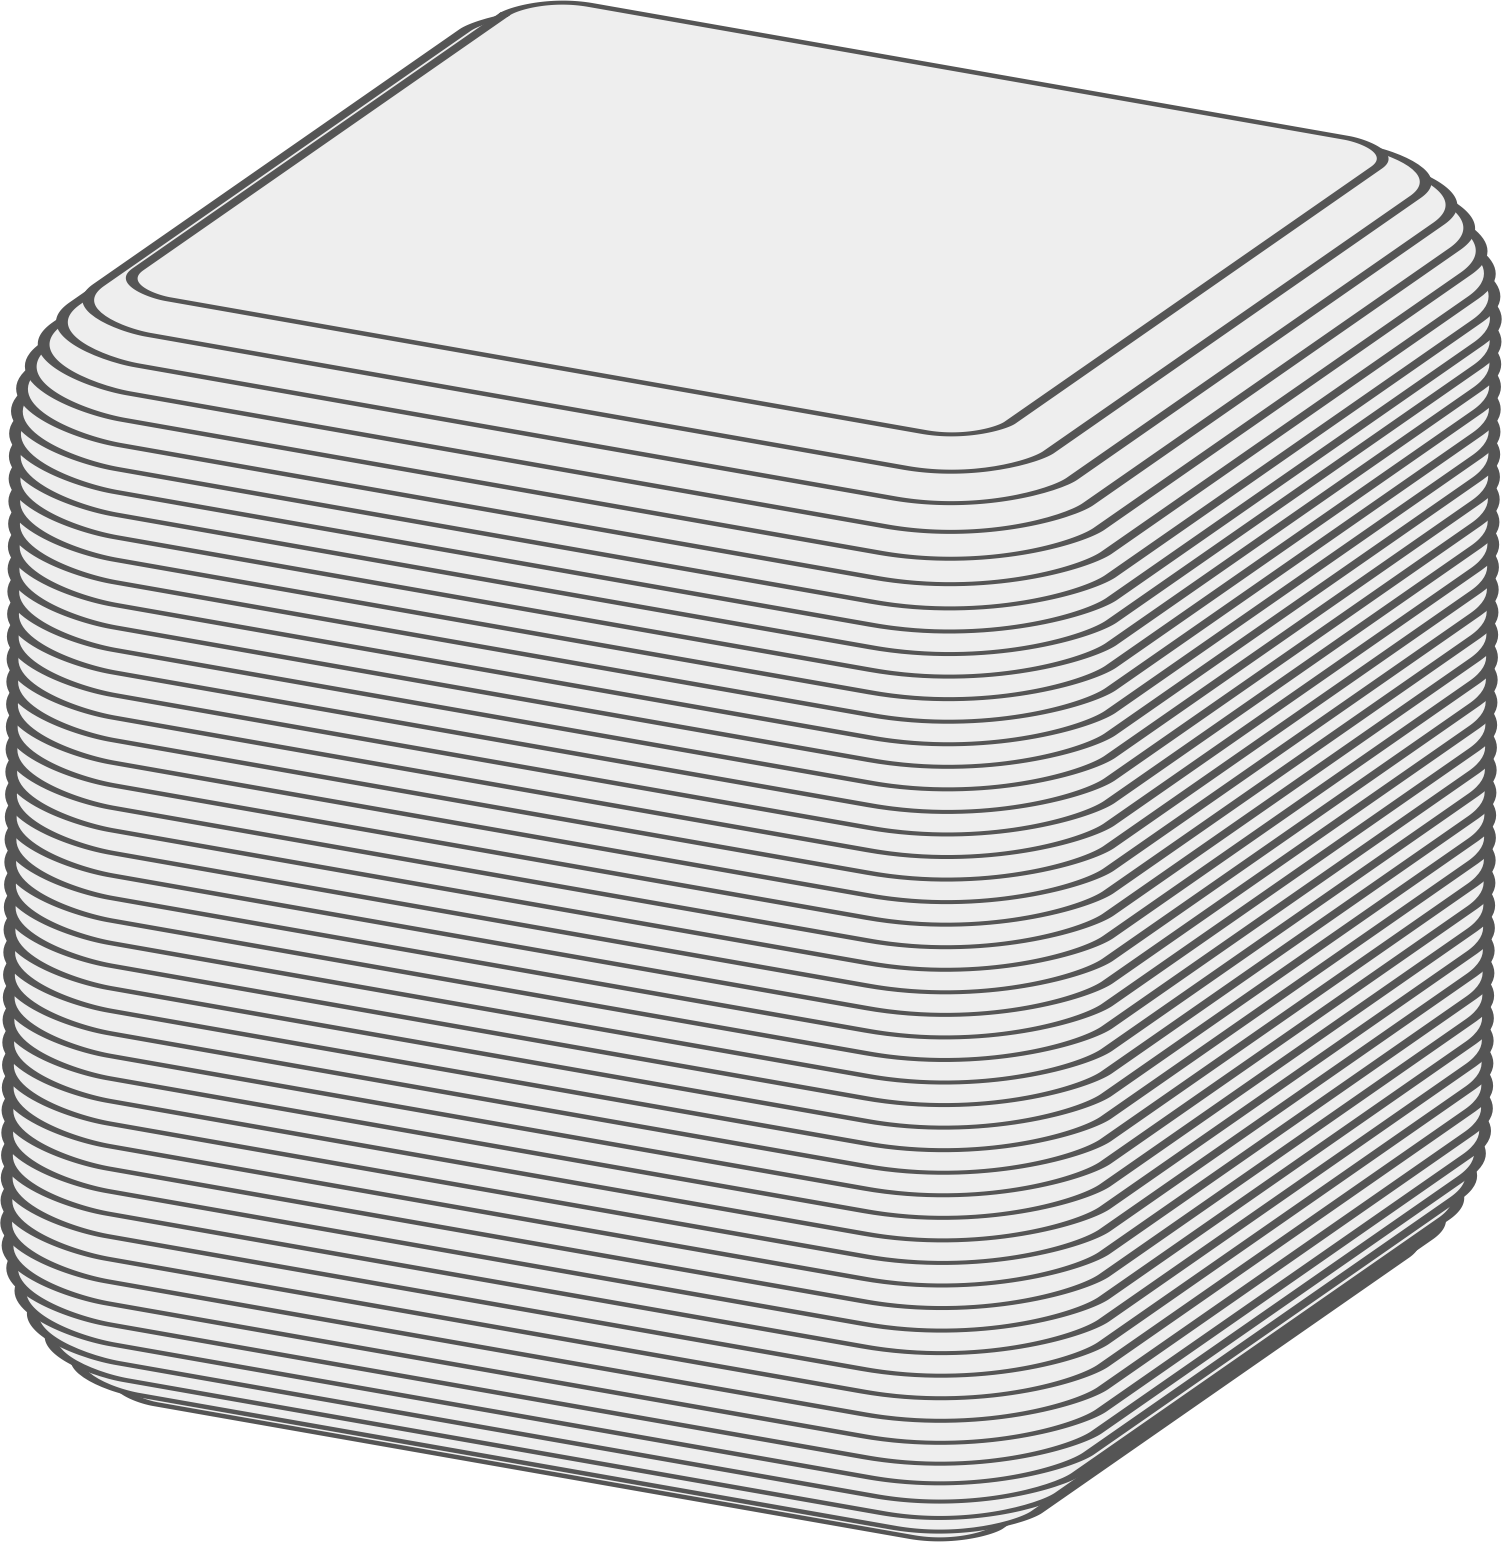 cube clipart animated